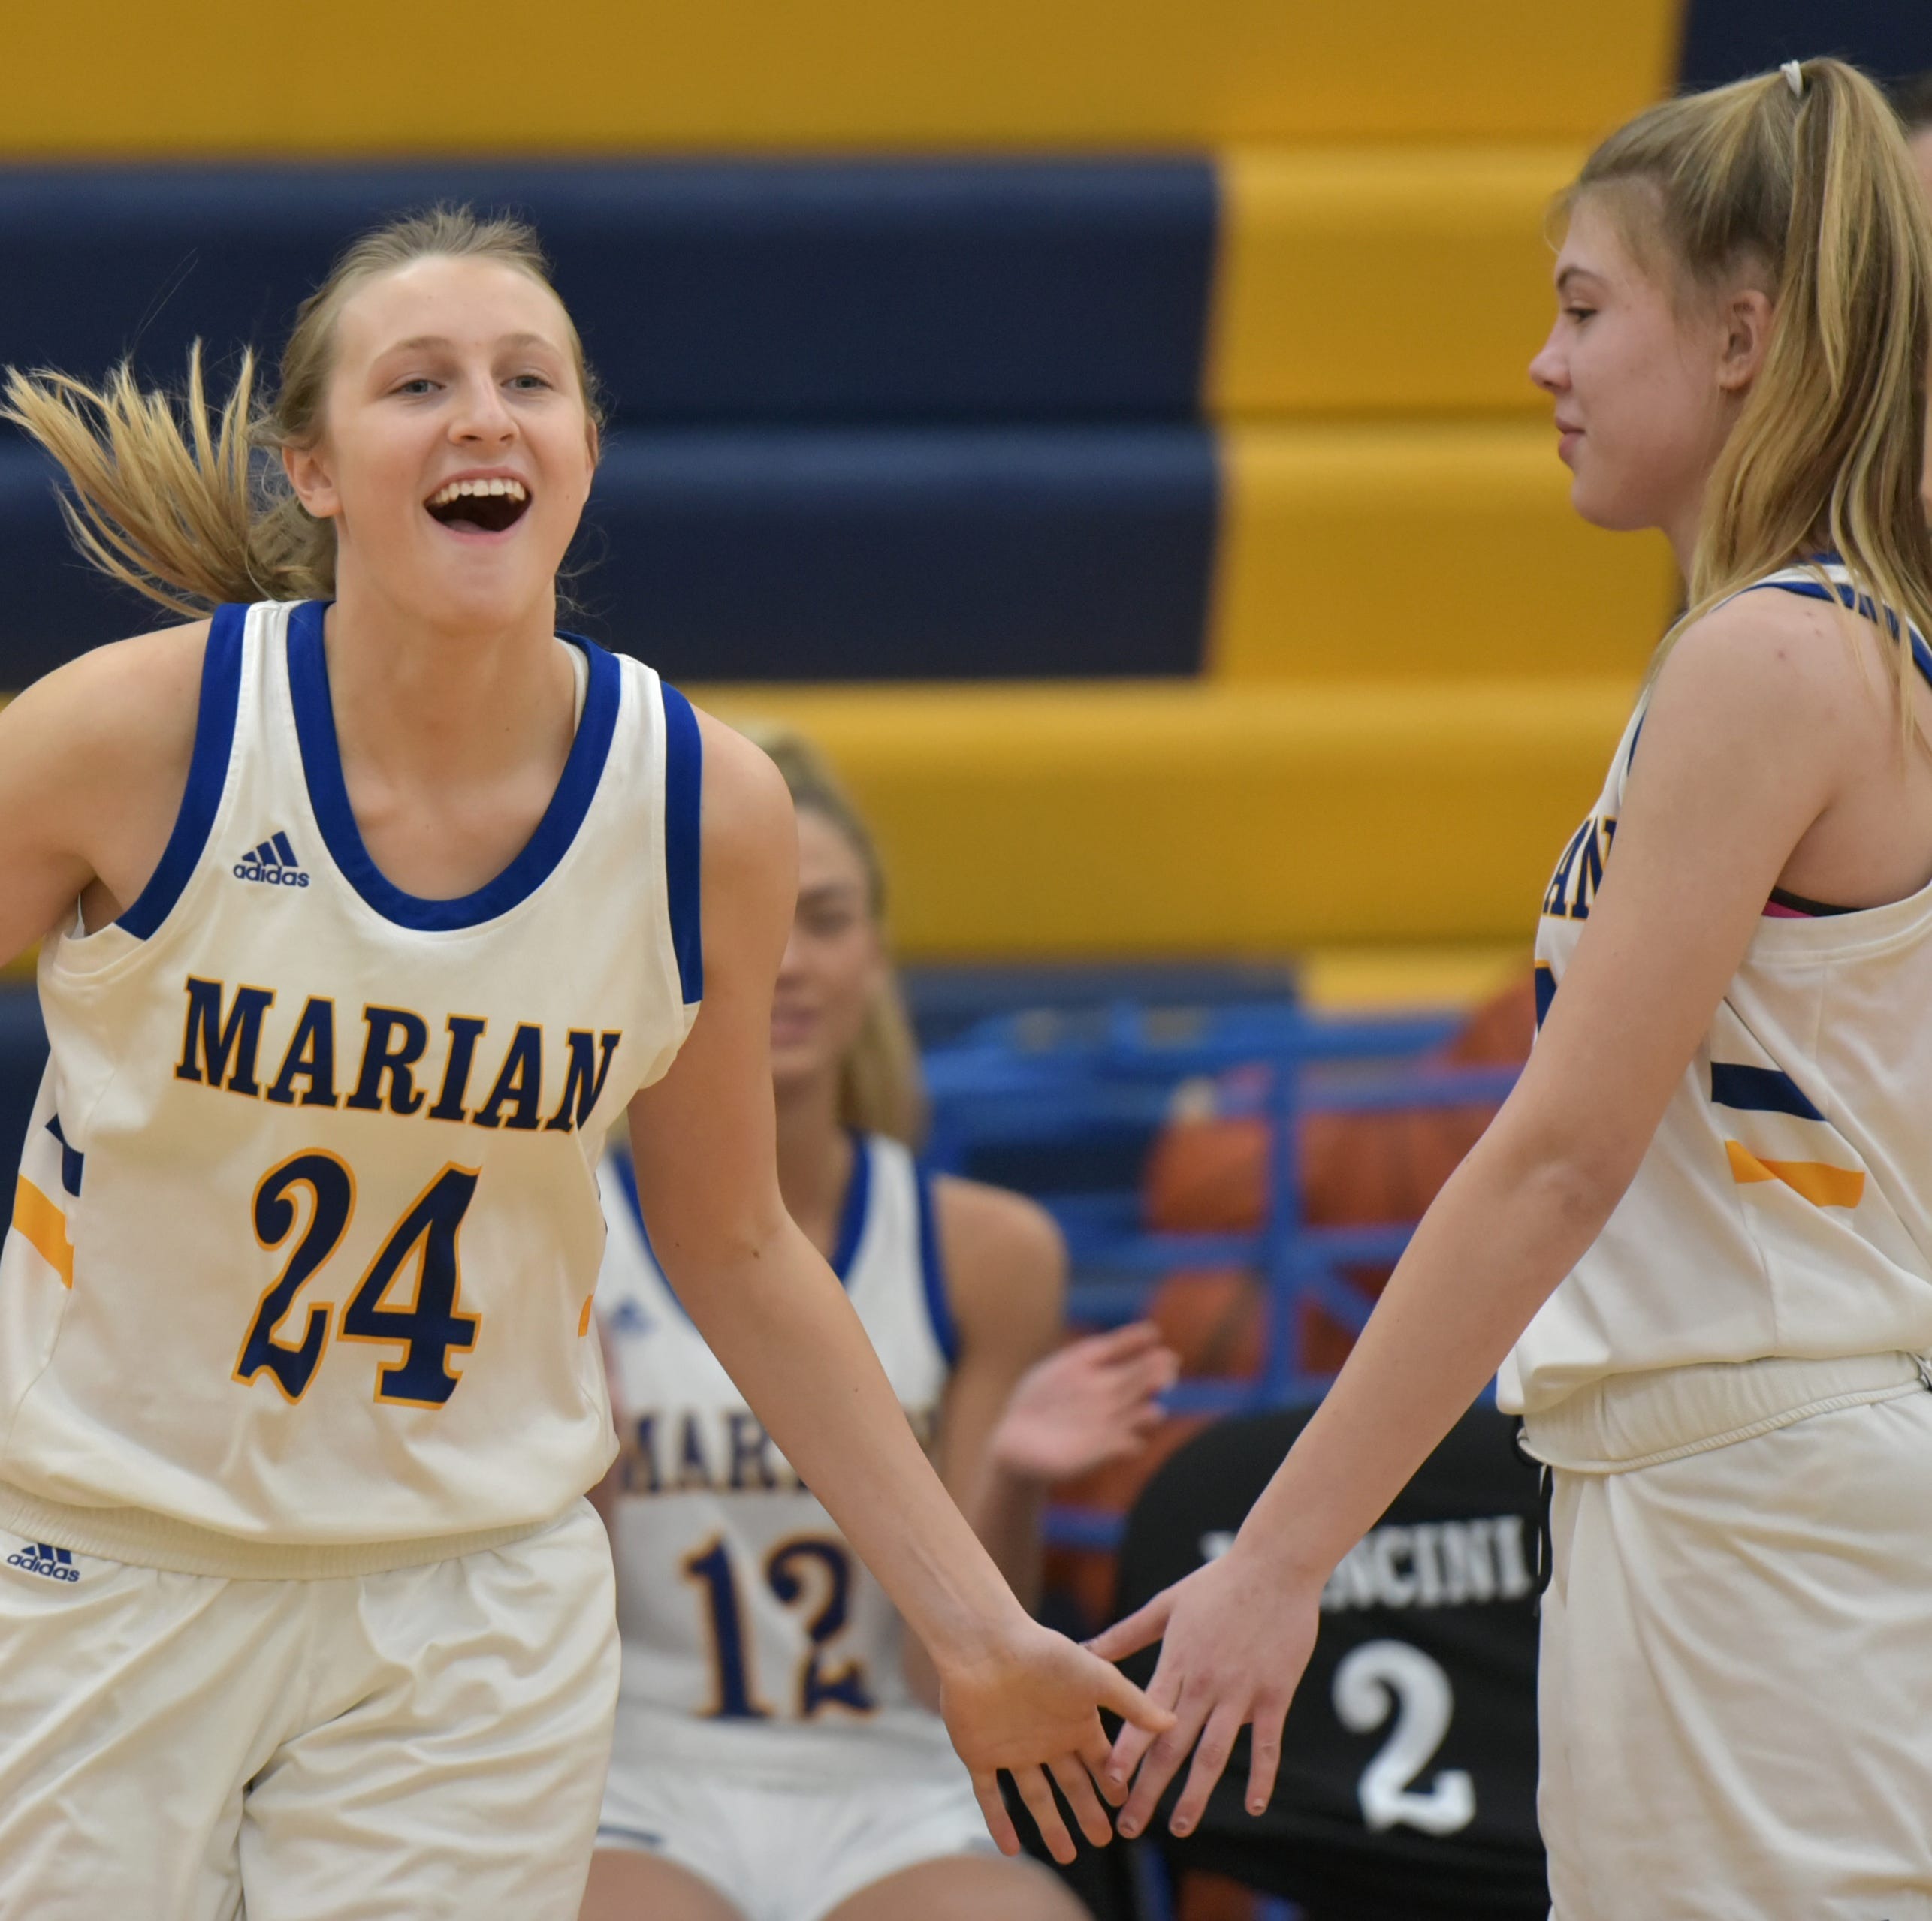 Kennedy sparks Marian to convincing basketball win over rival Mercy